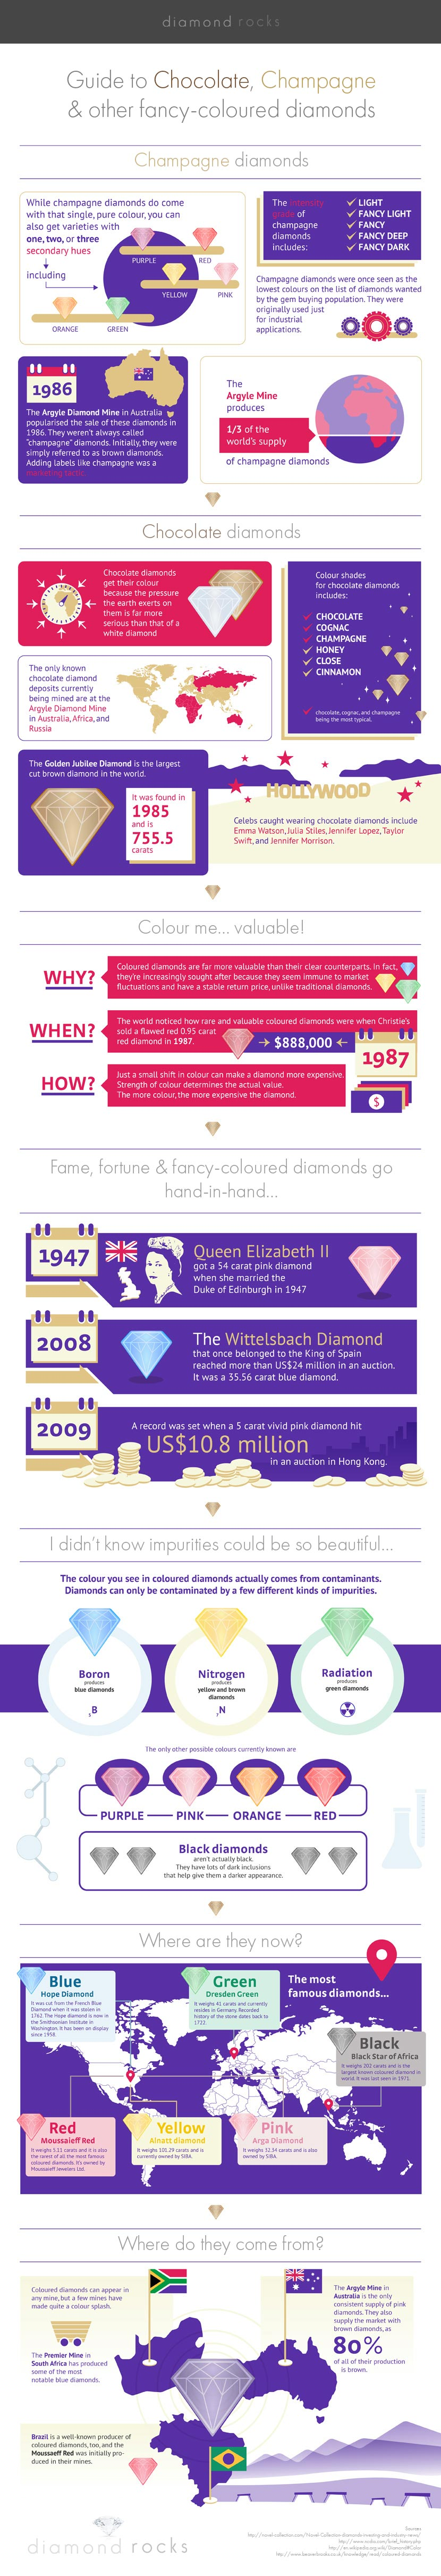 Infographic guide to chocolate, champagne and fancy-coloured diamonds